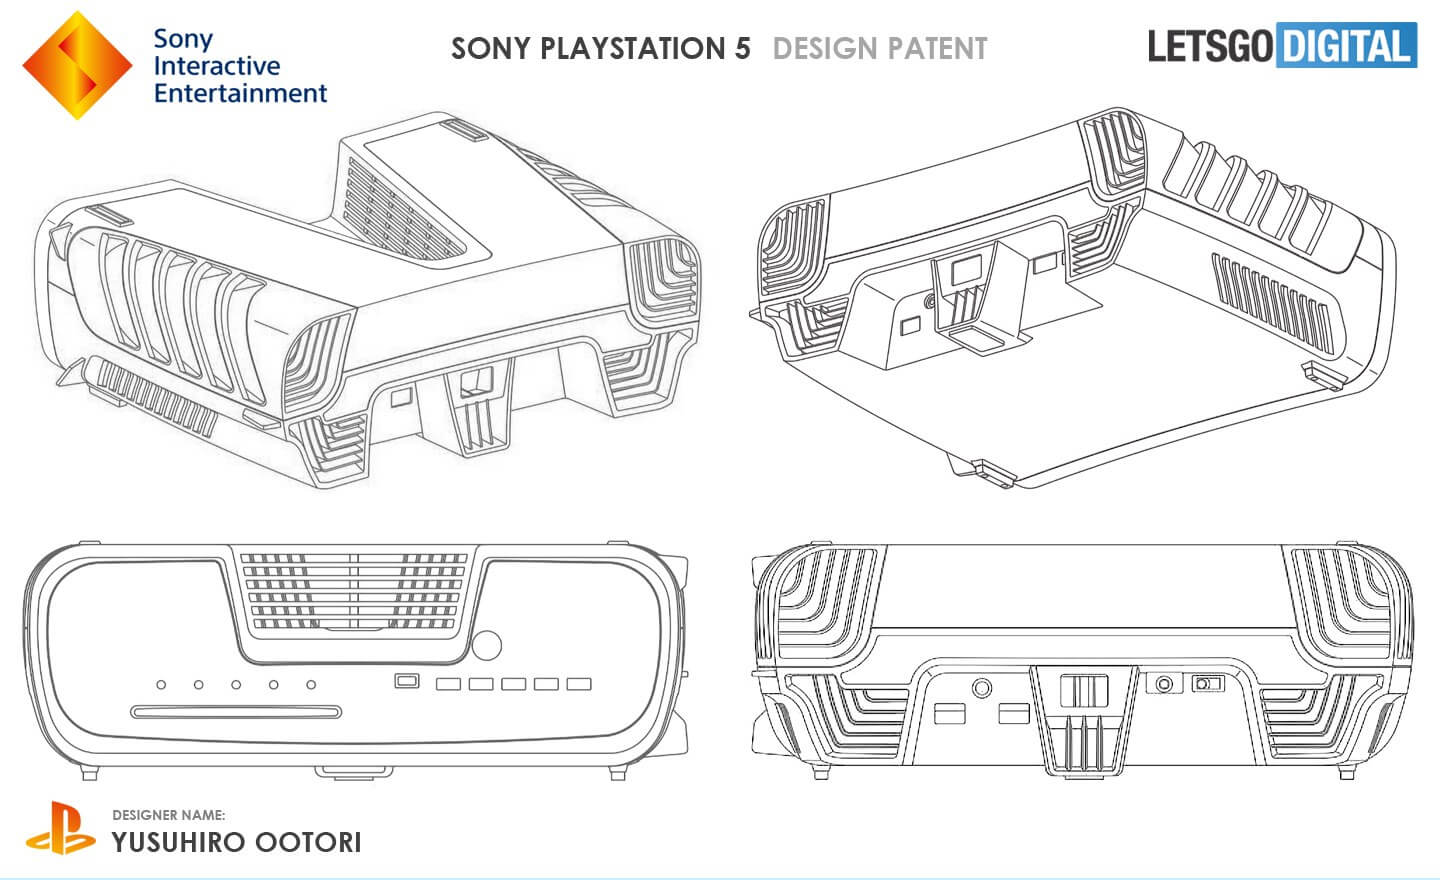 Sony confirms PlayStation 5 name, release date, ray tracing, and new controller features